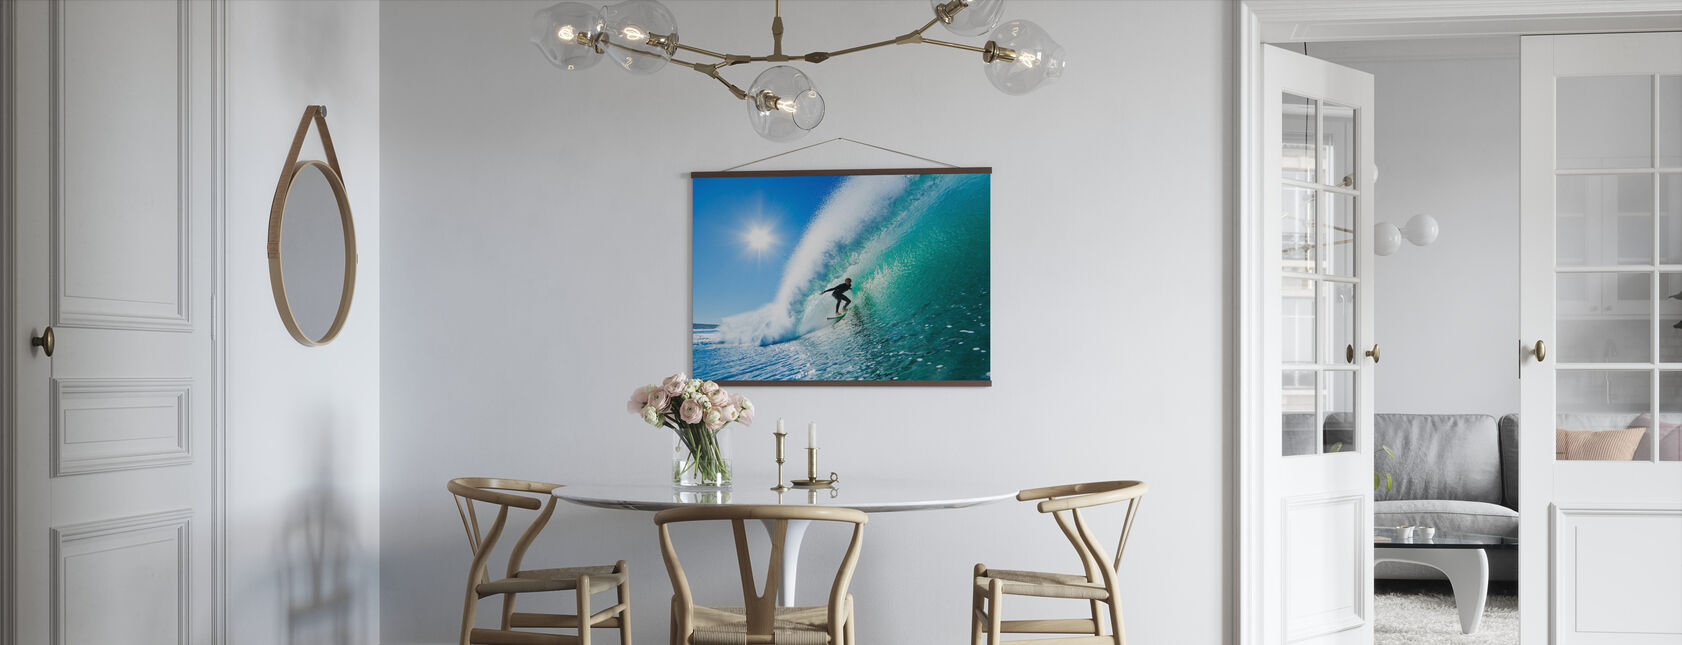 Surfing - Poster - Kitchen